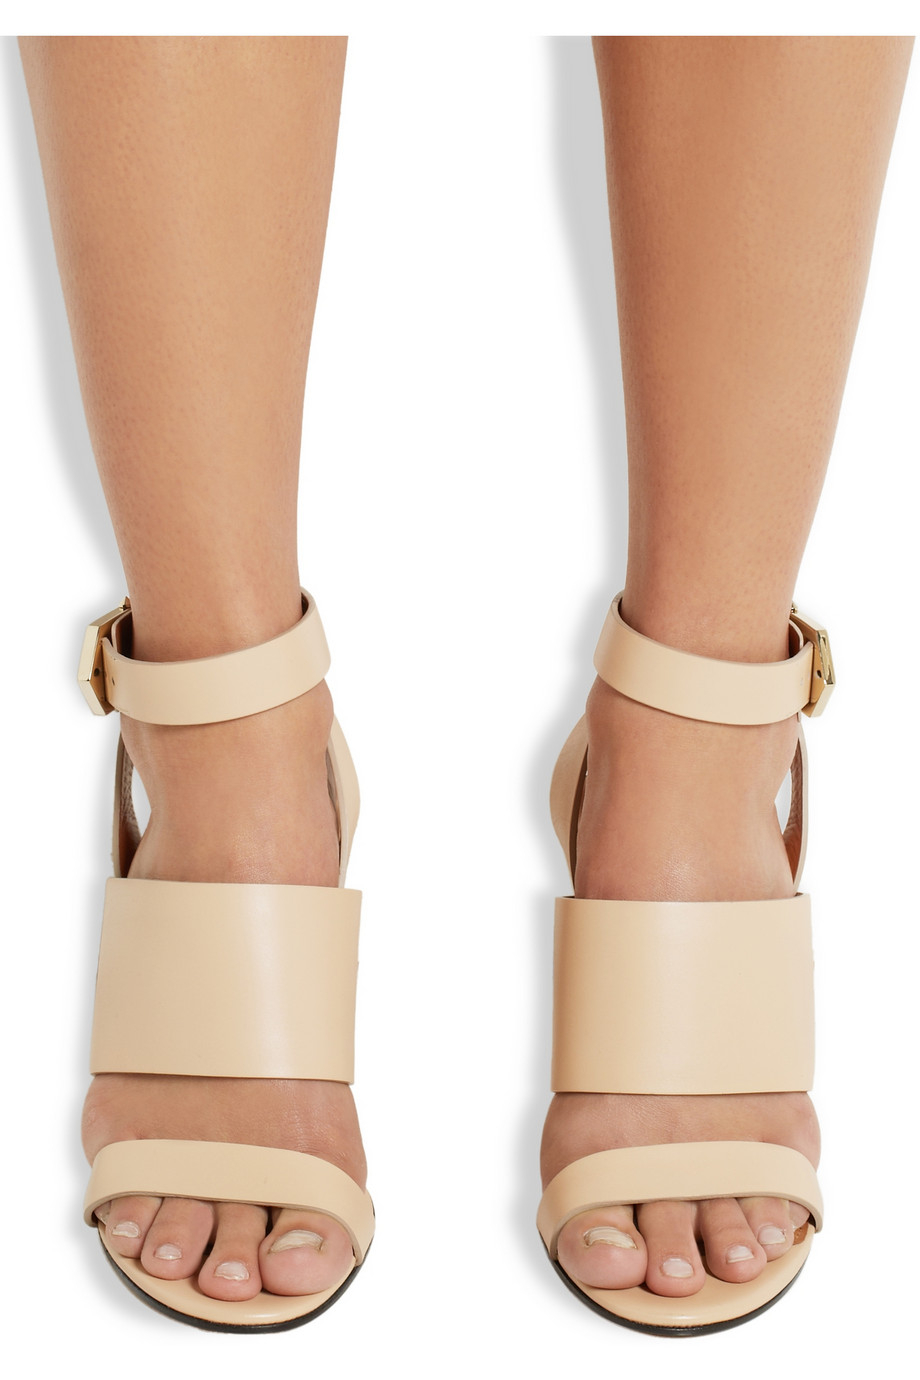 order cheap price Givenchy Sara Leather Sandals free shipping eastbay free shipping clearance gjvHdmHhe